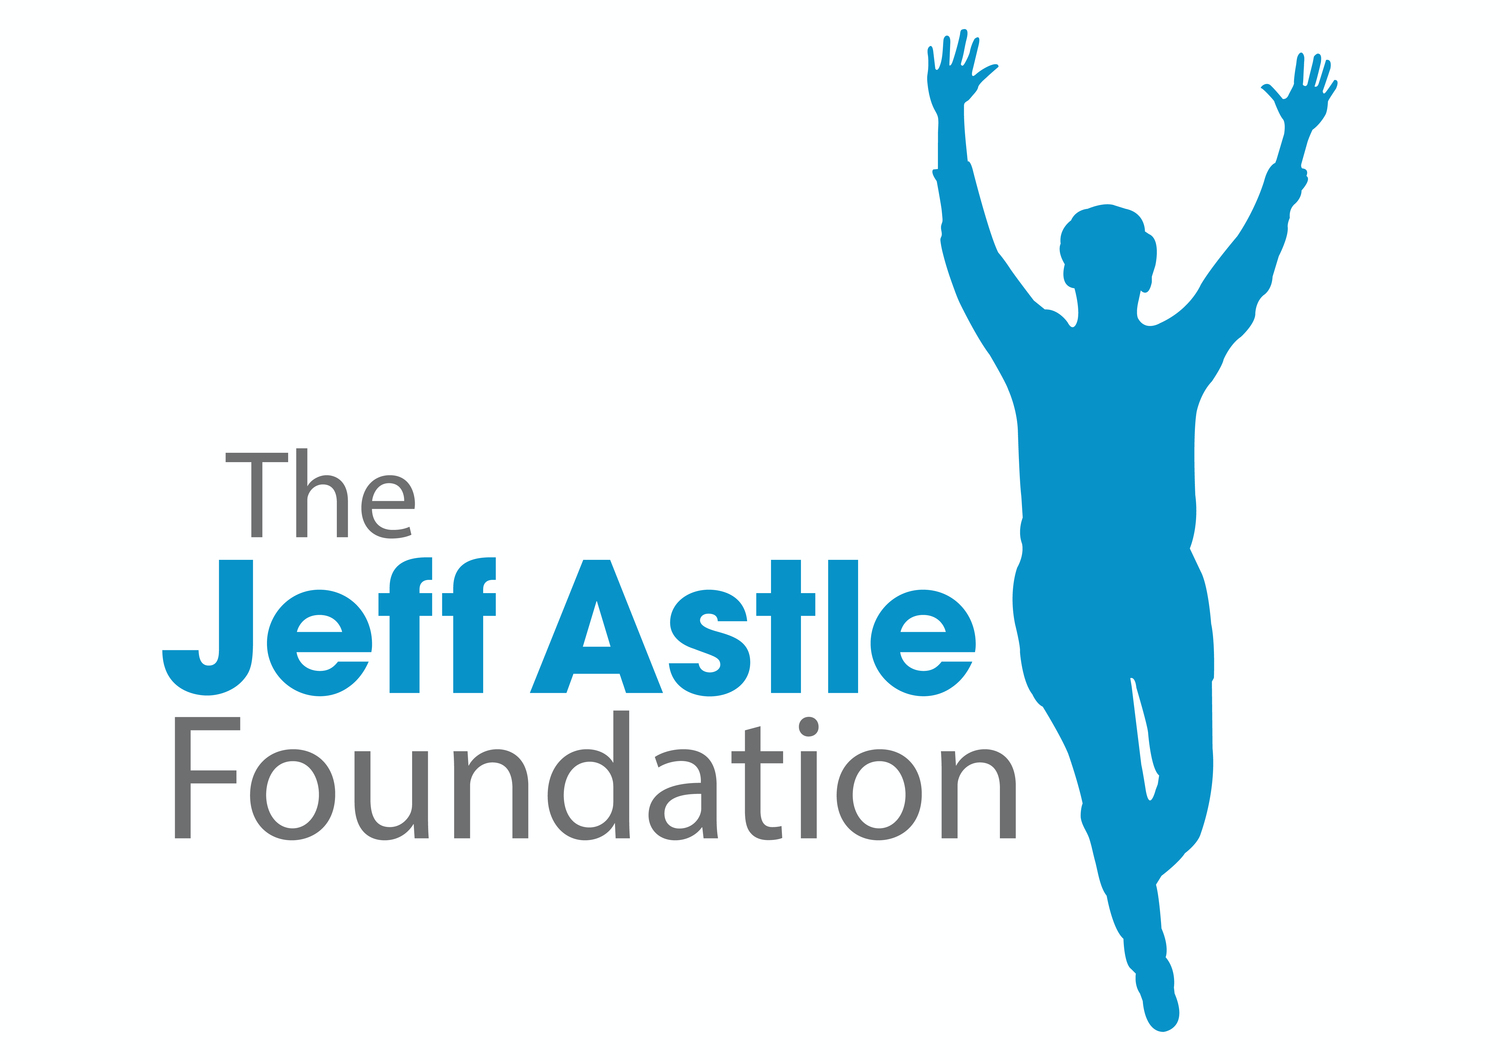 Jeff Astle Foundation